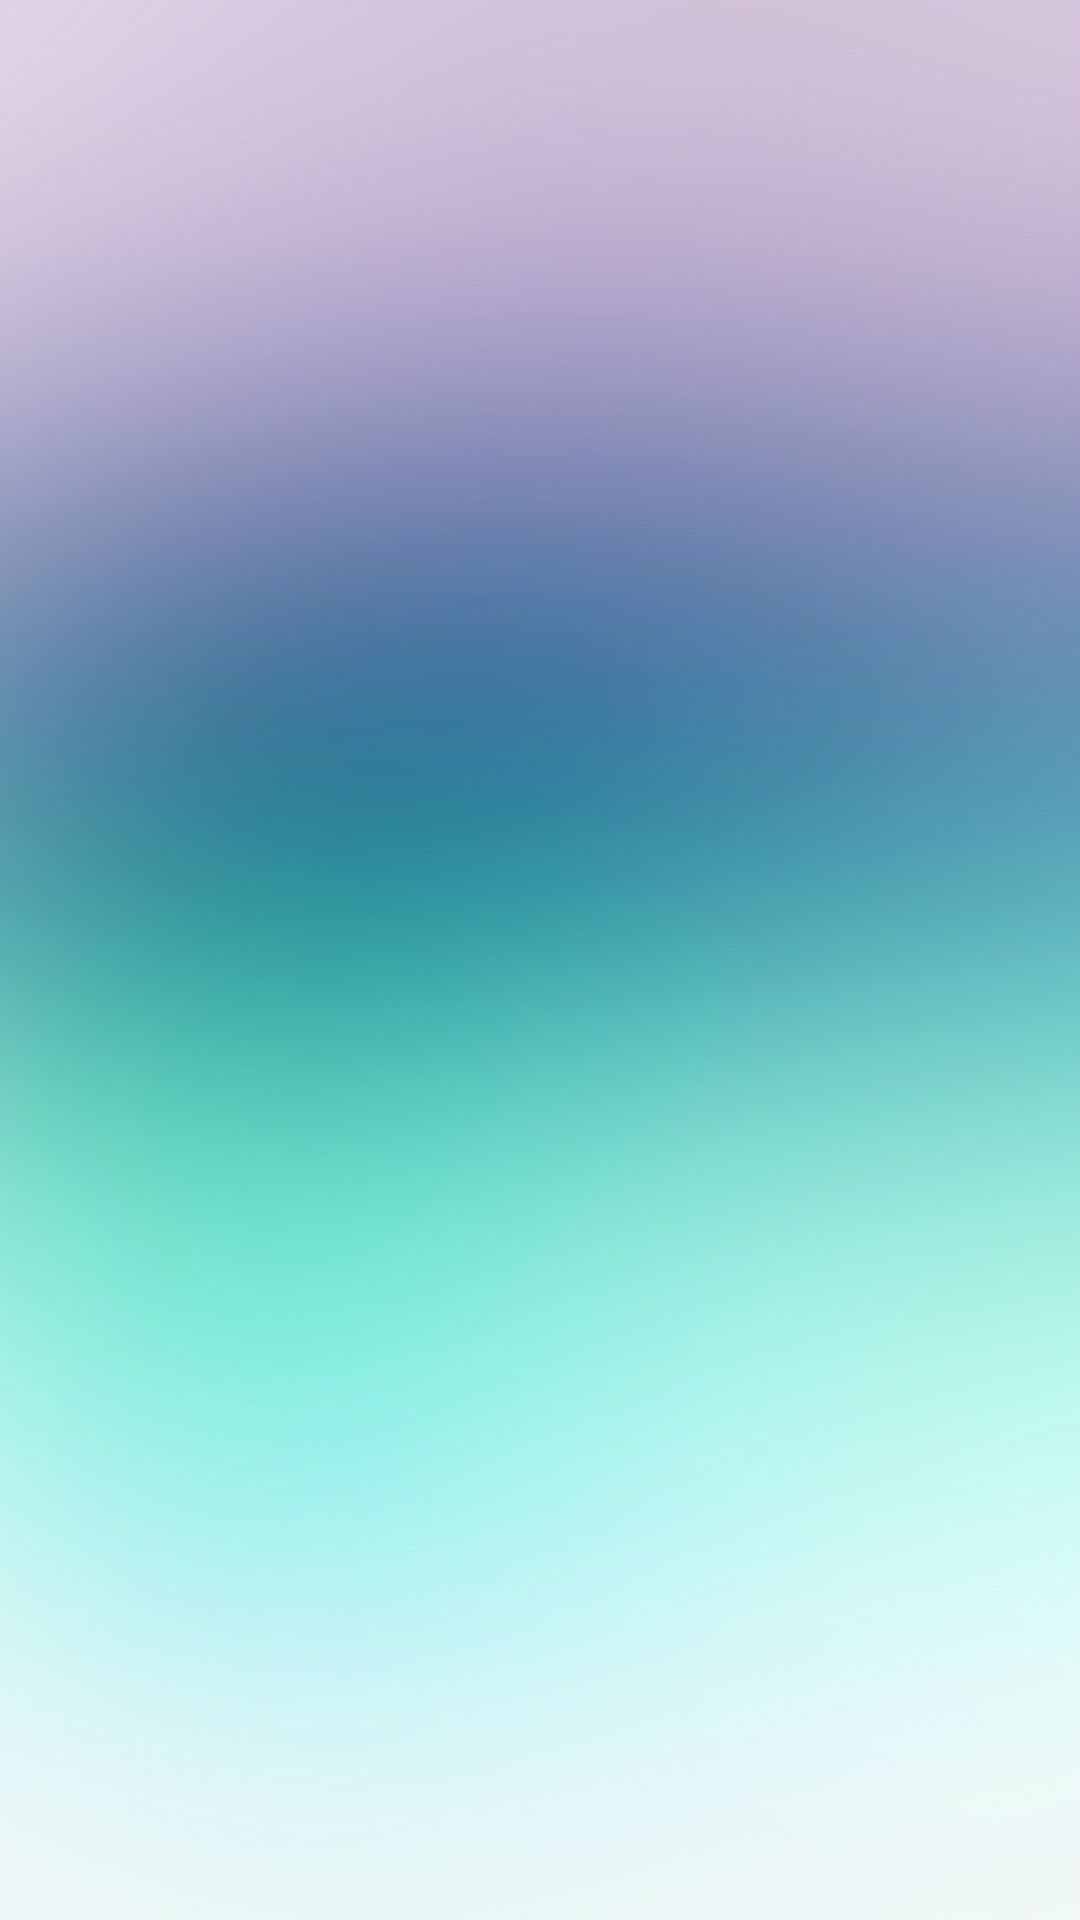 Violet, Blue, Light Teal Gradation | Color Hues in 2019 | Ombre wallpaper iphone, Blue wallpaper ...